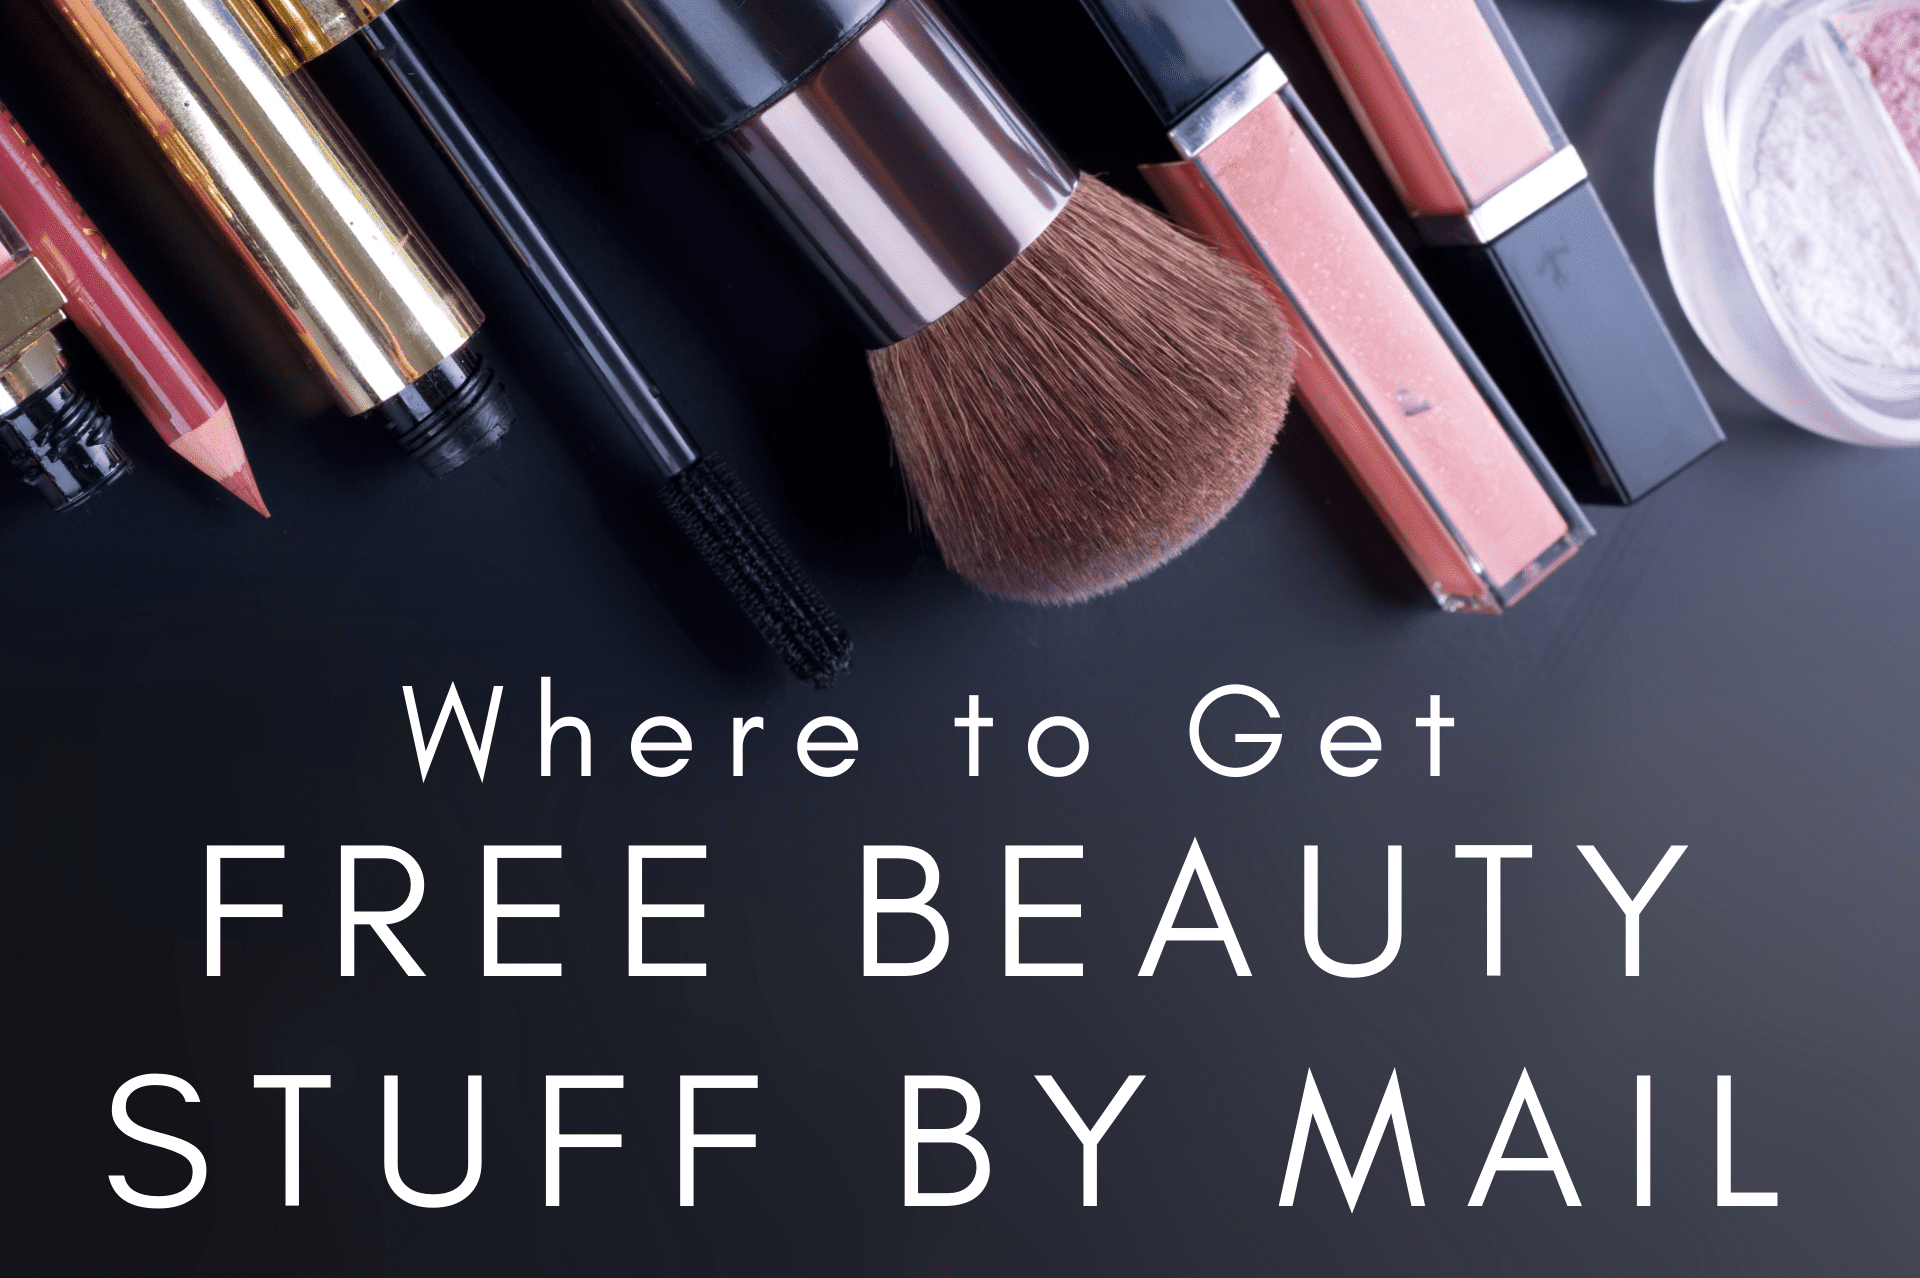 Where To Get Free Beauty Stuff By Mail